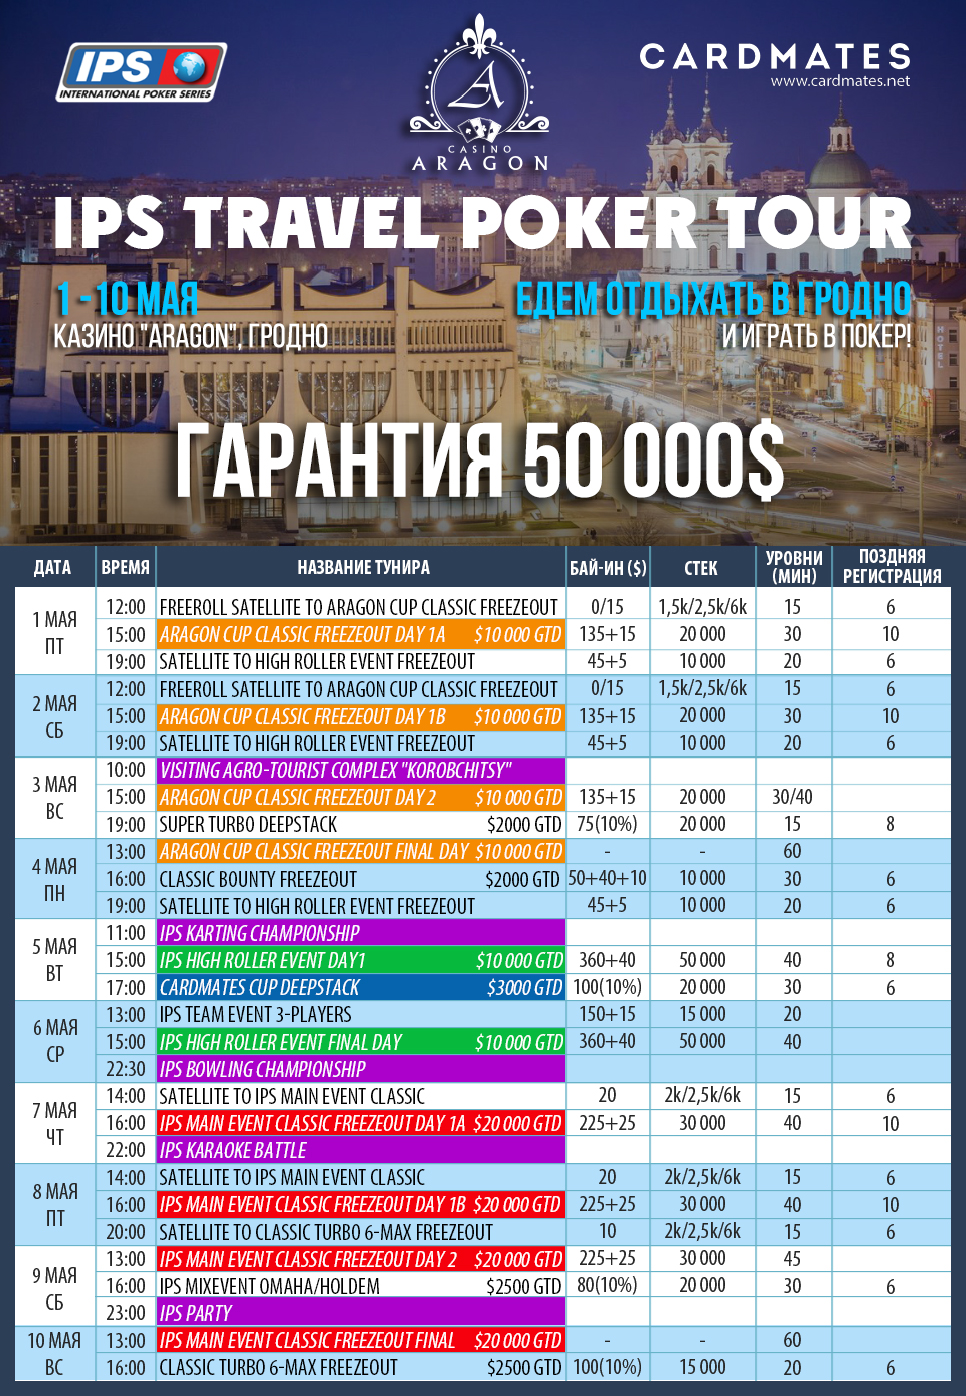 IPS TRAVEL POKER TOUR - 1-10 мая!